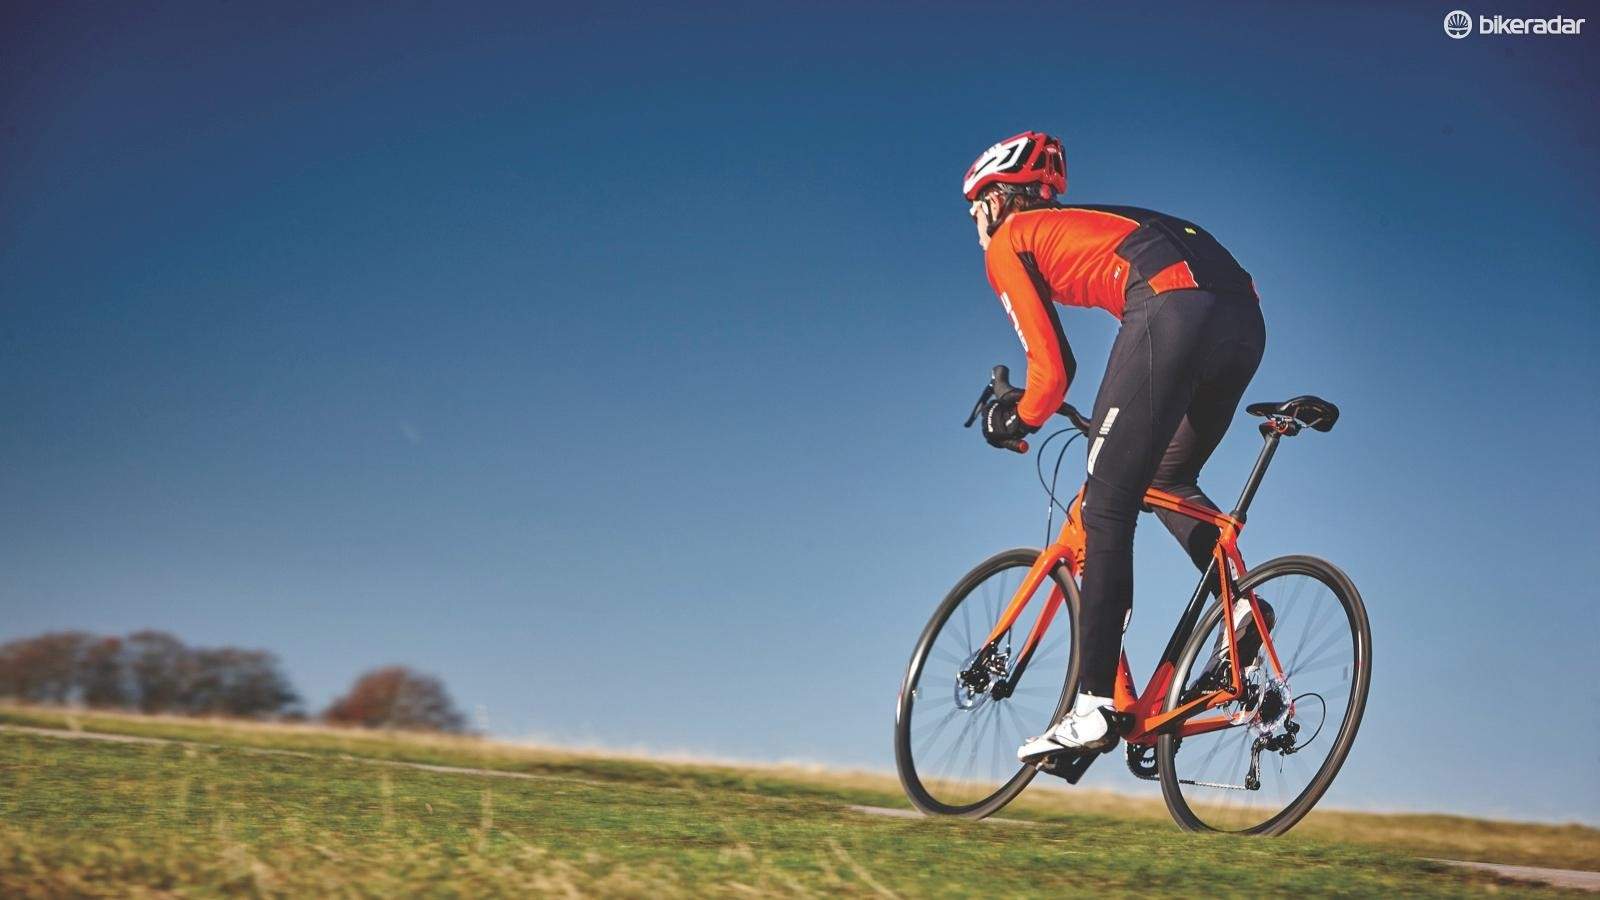 Break bad habits on the bike to improve your riding